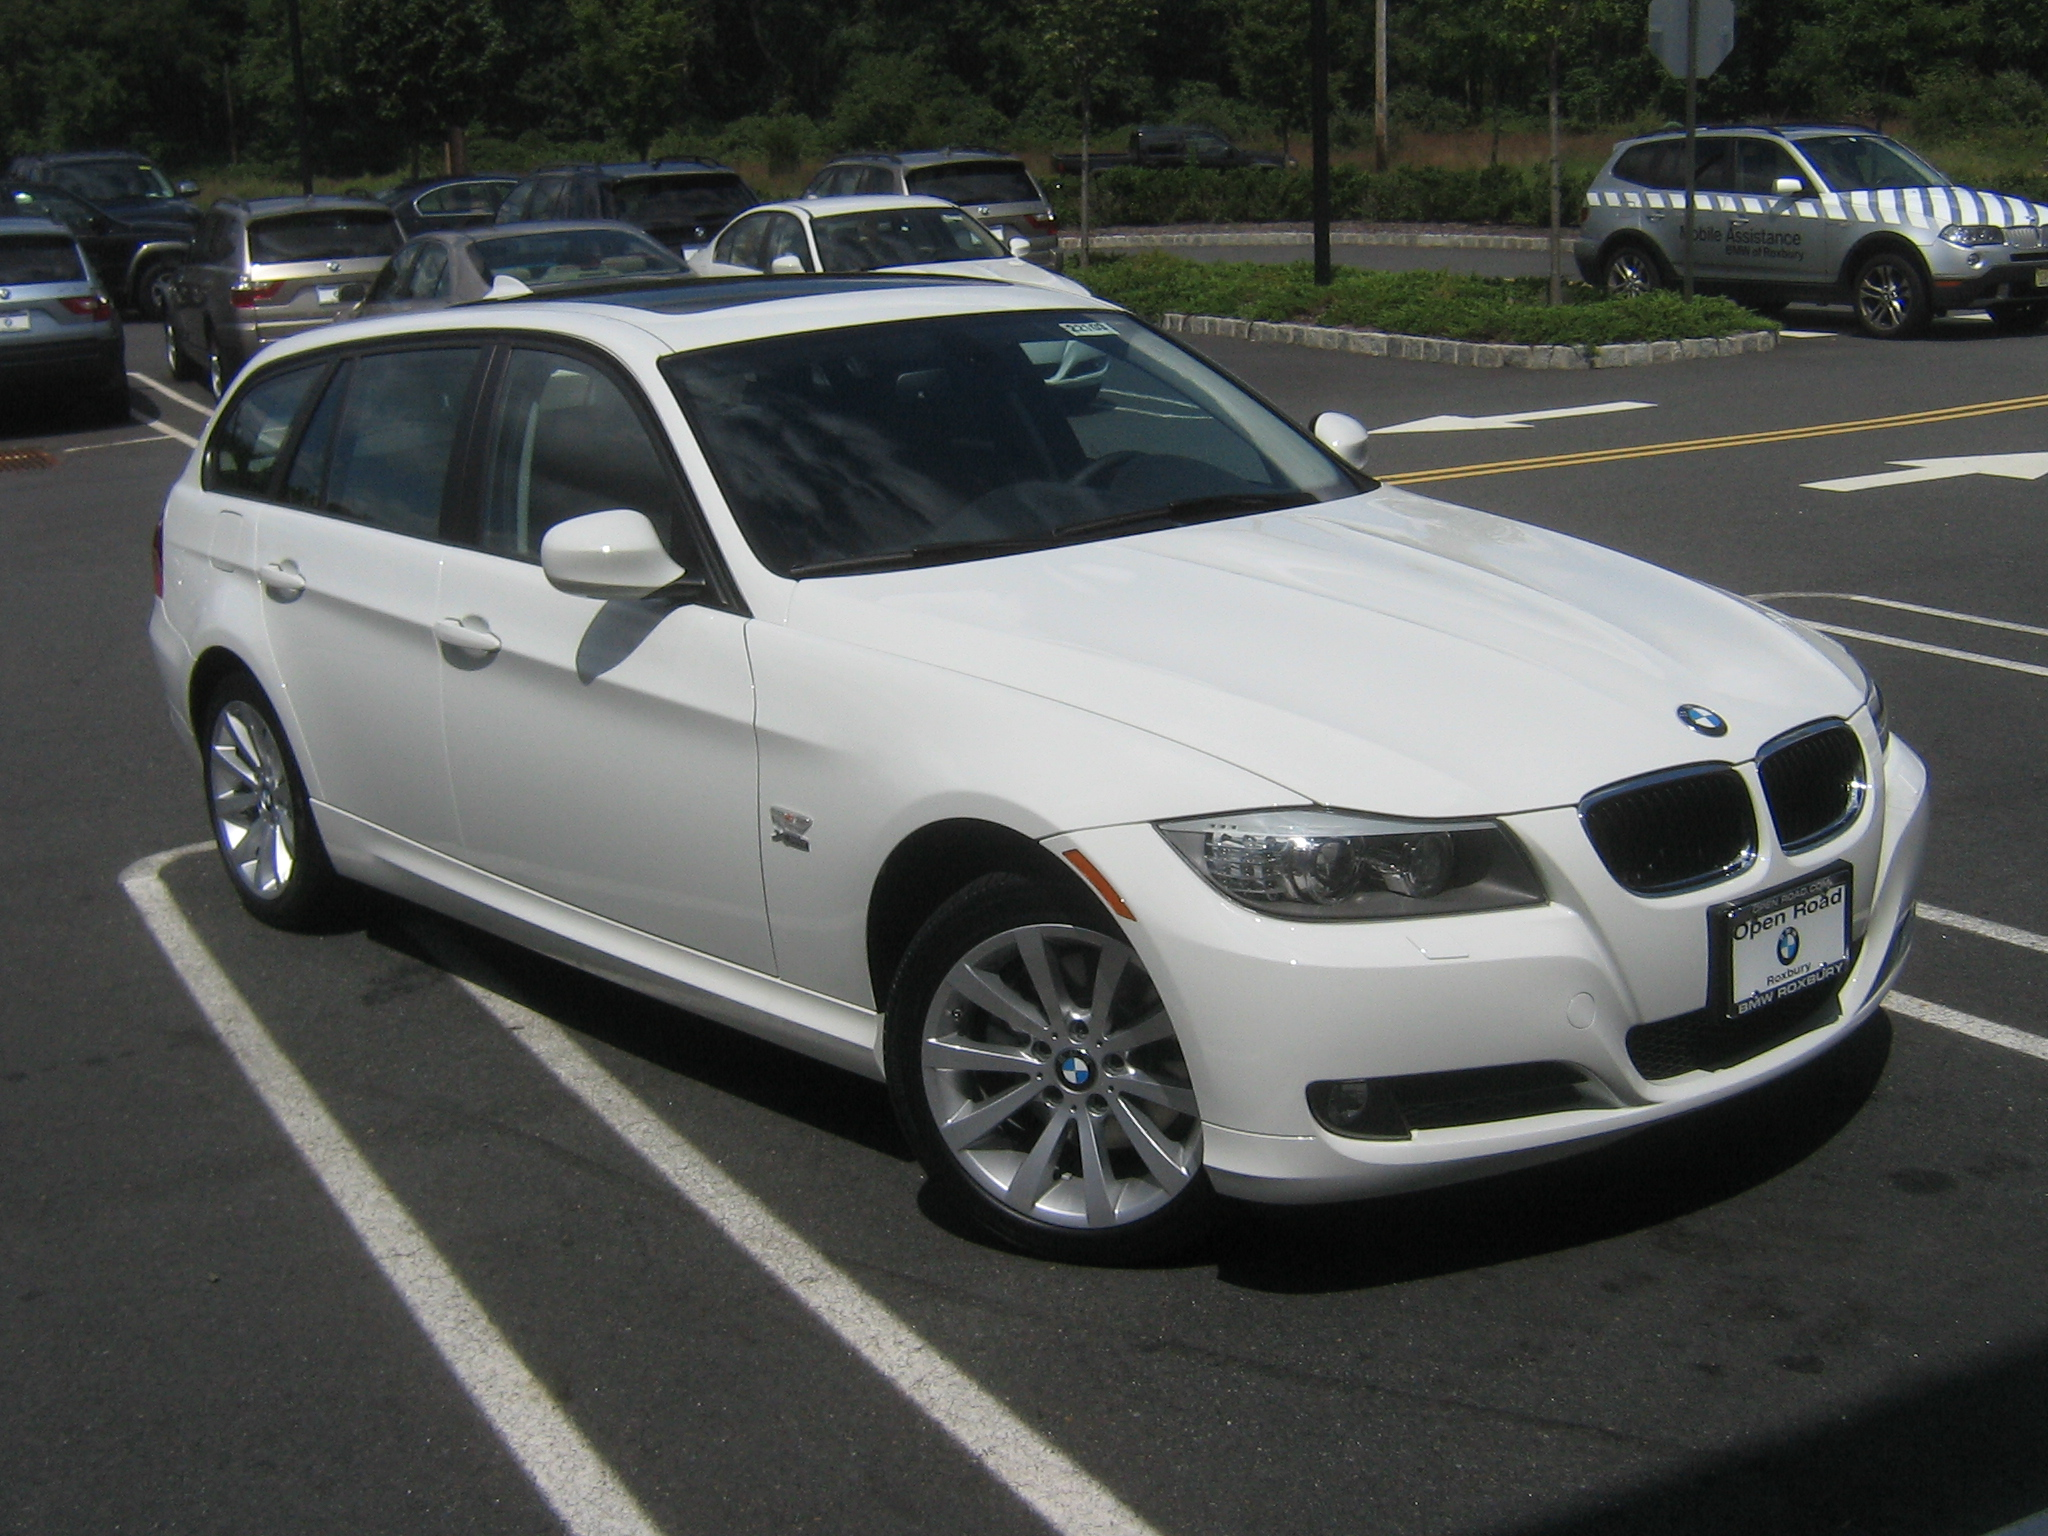 The  Series Has Been Bmws Best Known And Most Well Respected Model Since It Caught On In The United States Back In The S